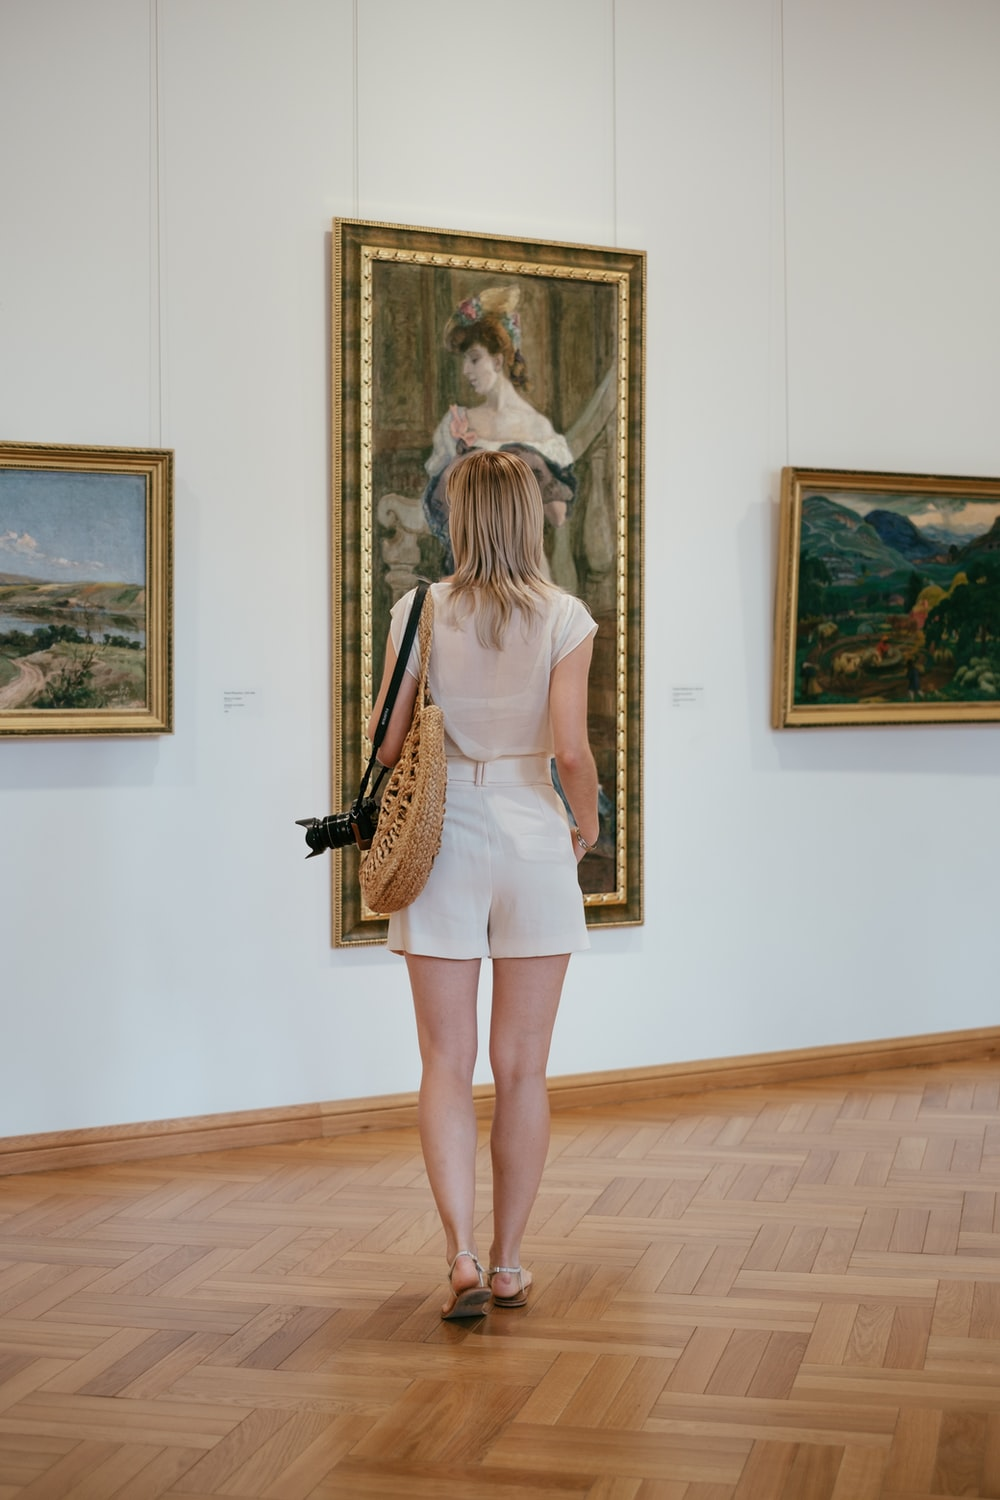 woman in white dress painting